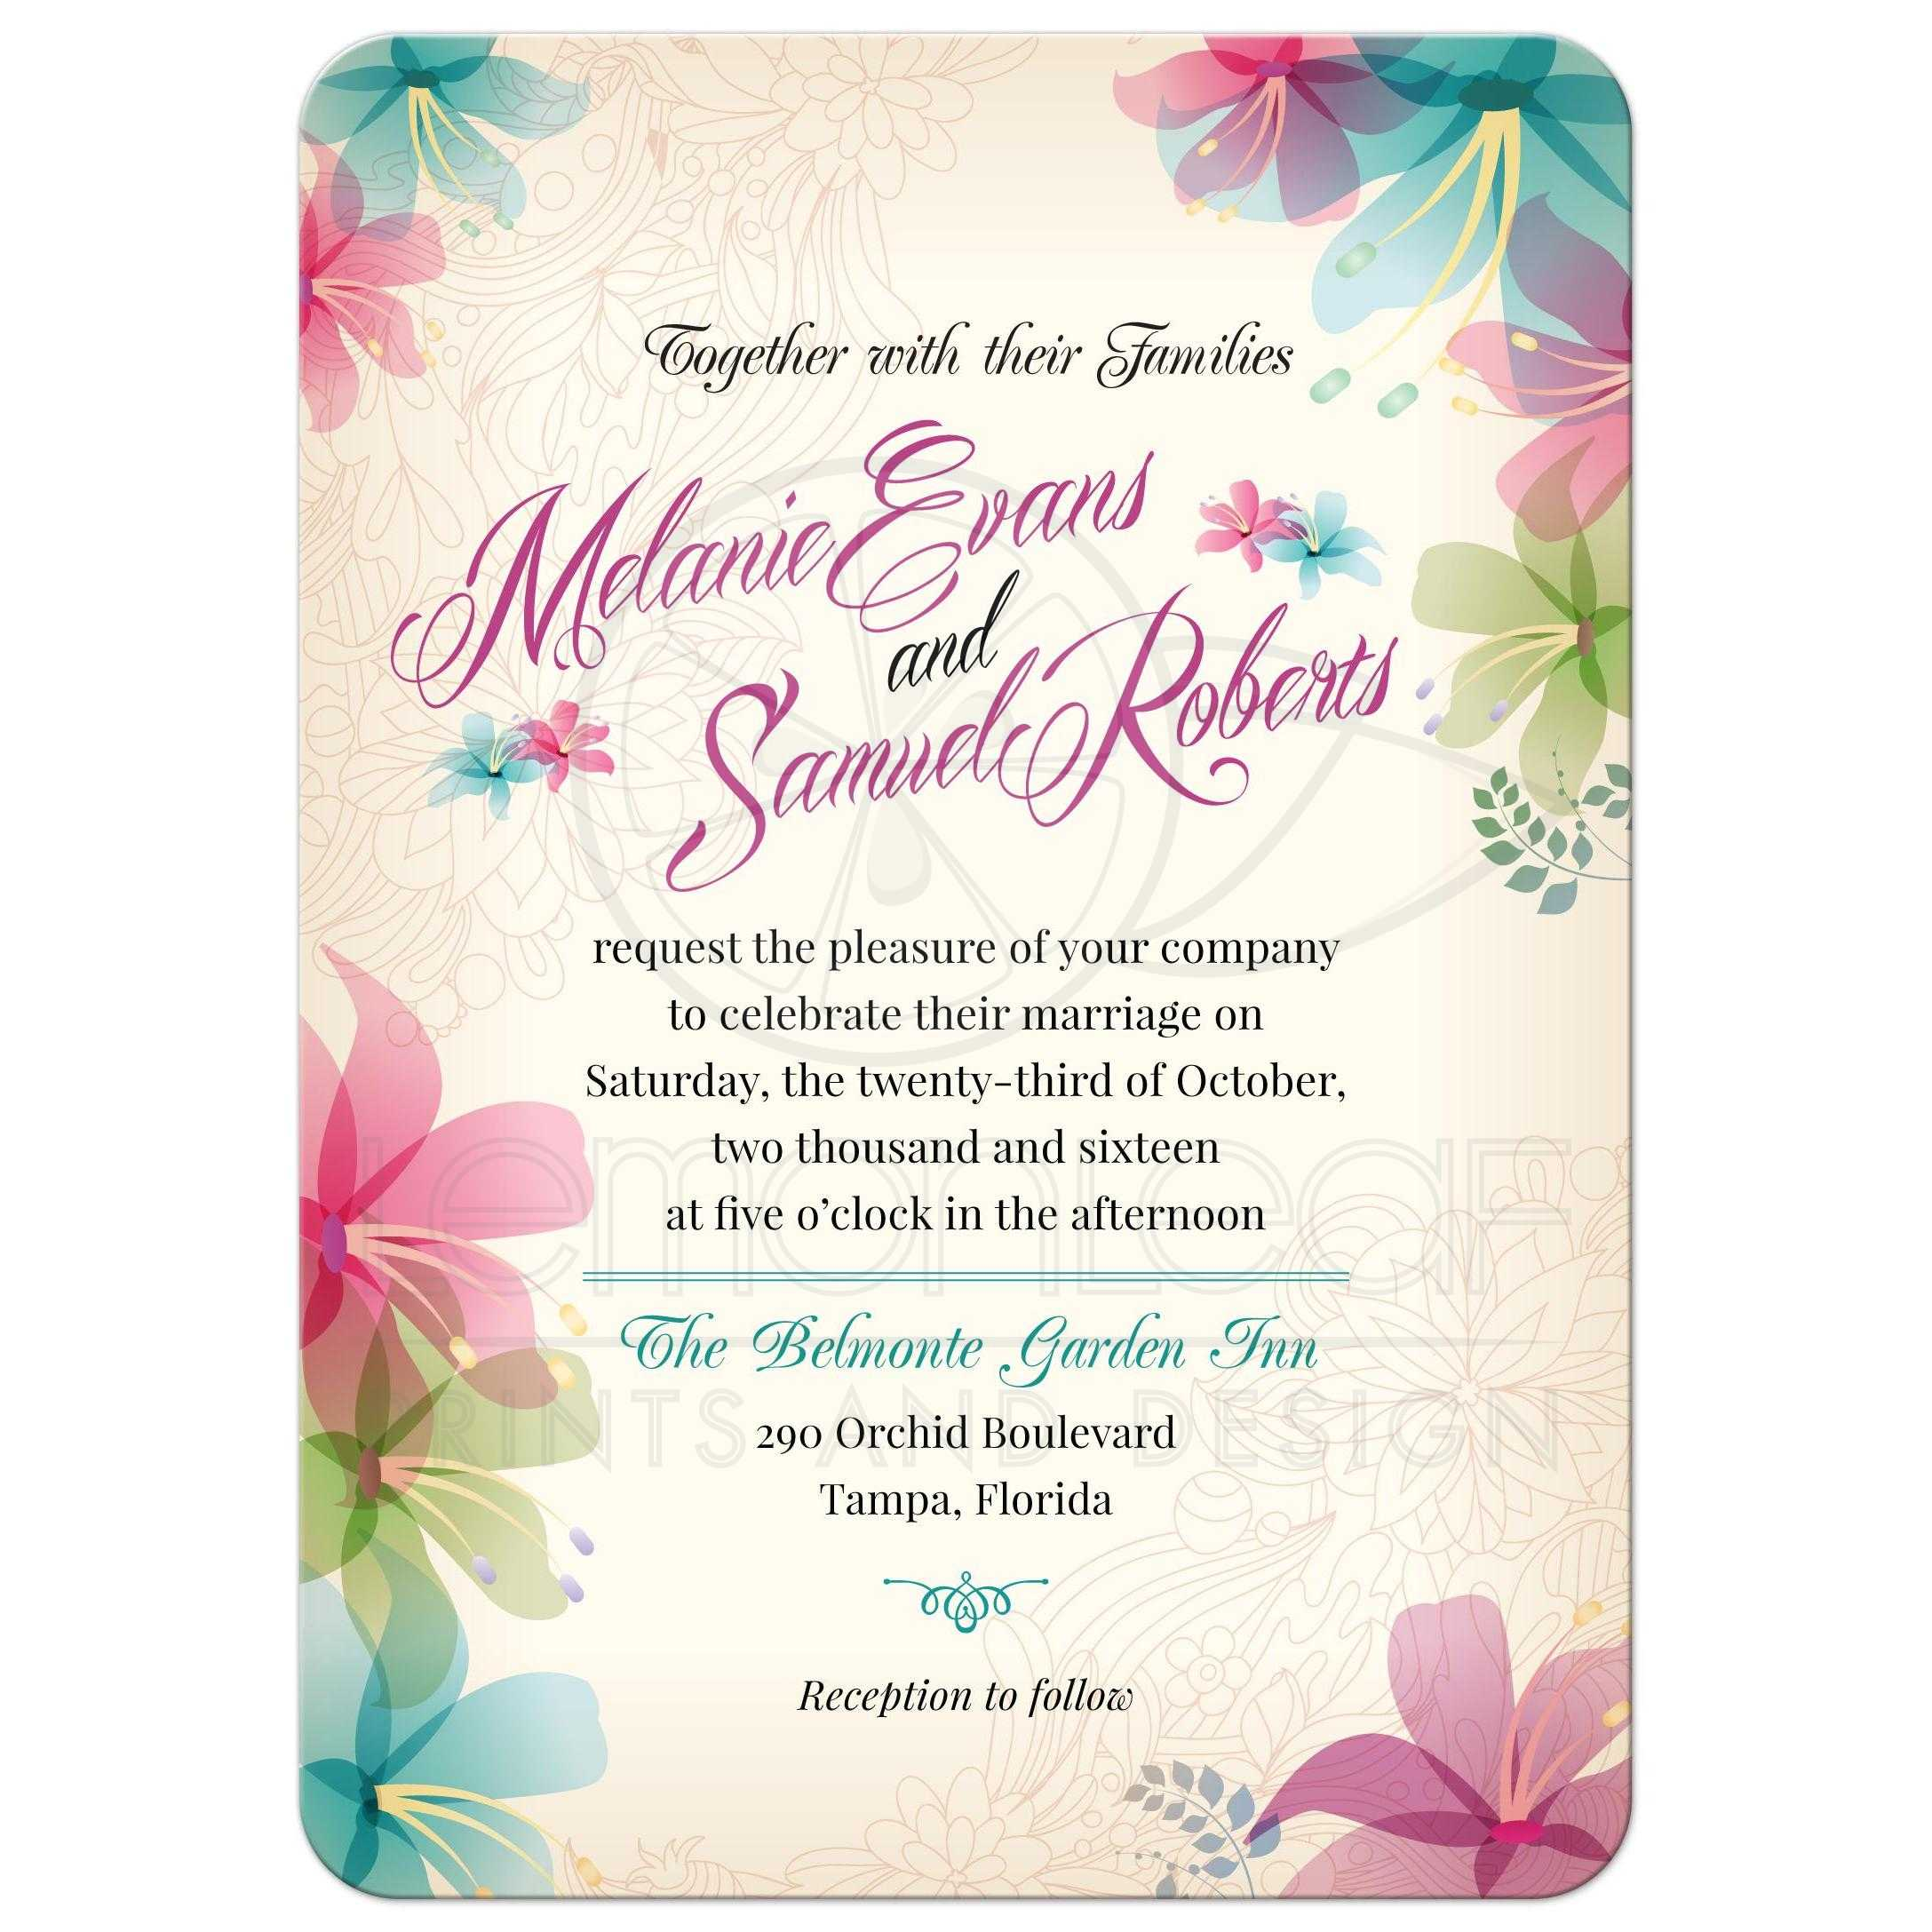 Wedding invitation - Tropical Floral Soft Pink Teal Orchids